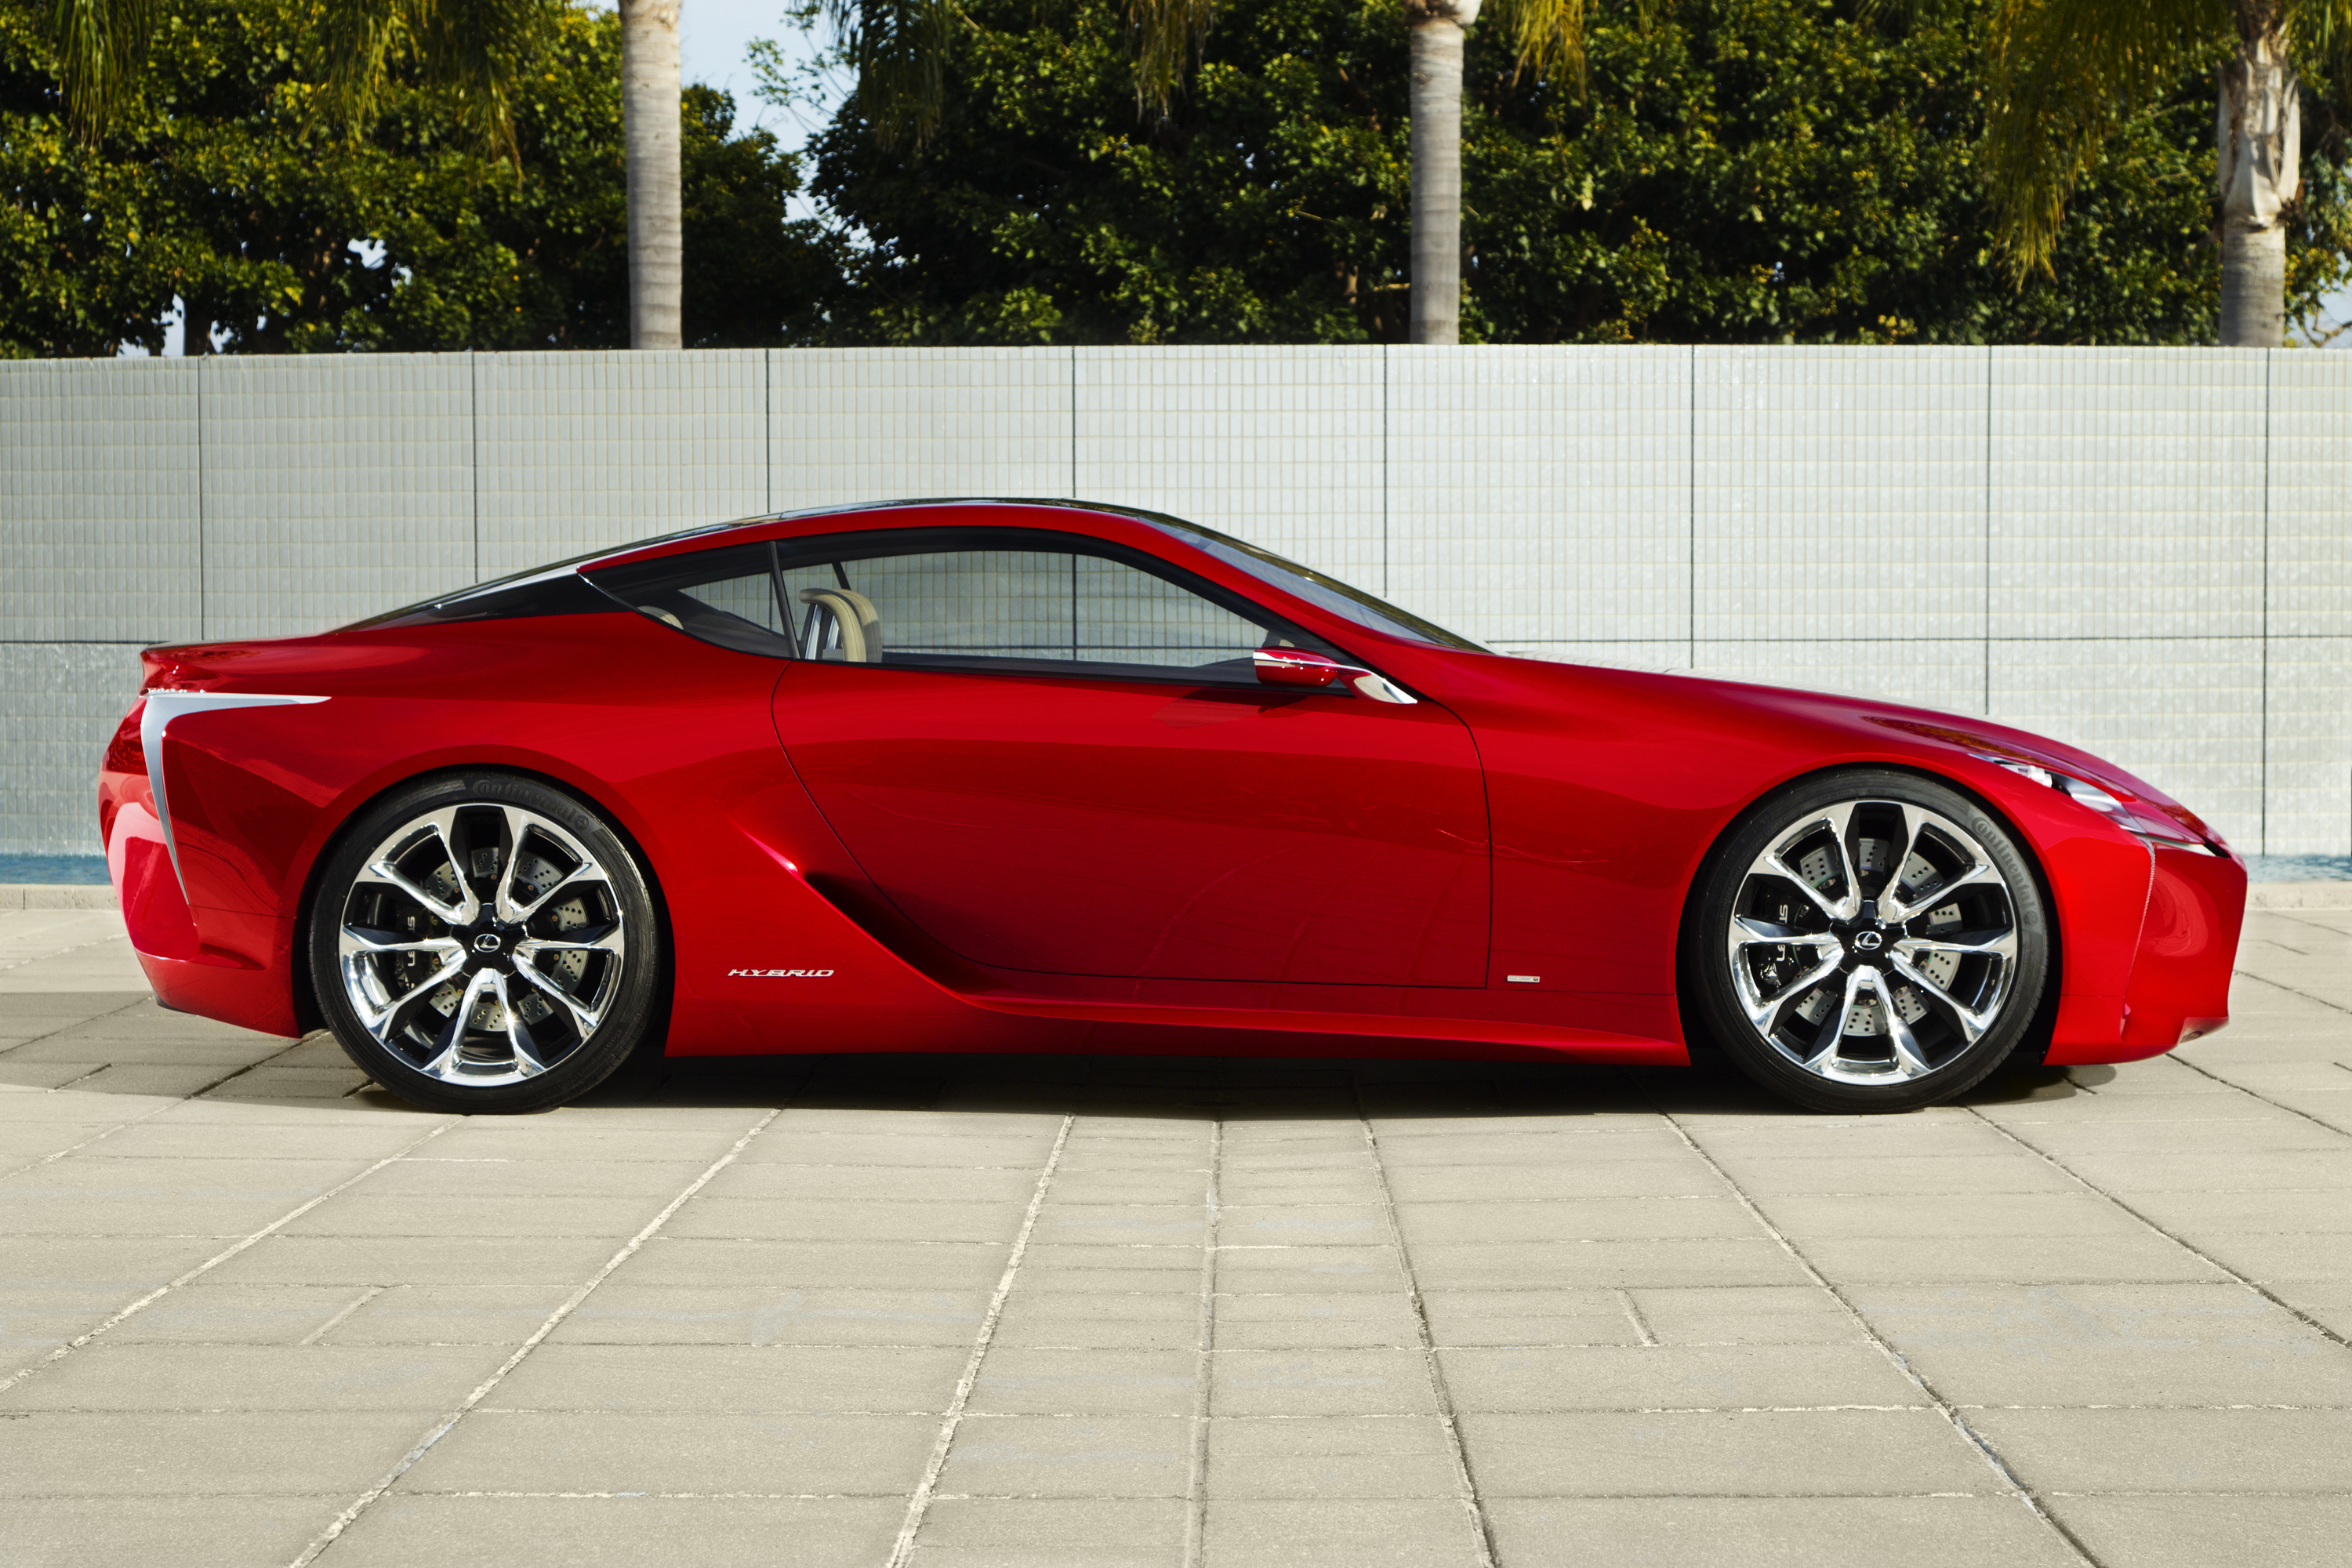 GALLERY: More pics of the Lexus LF-LC Concept surface Paul ...